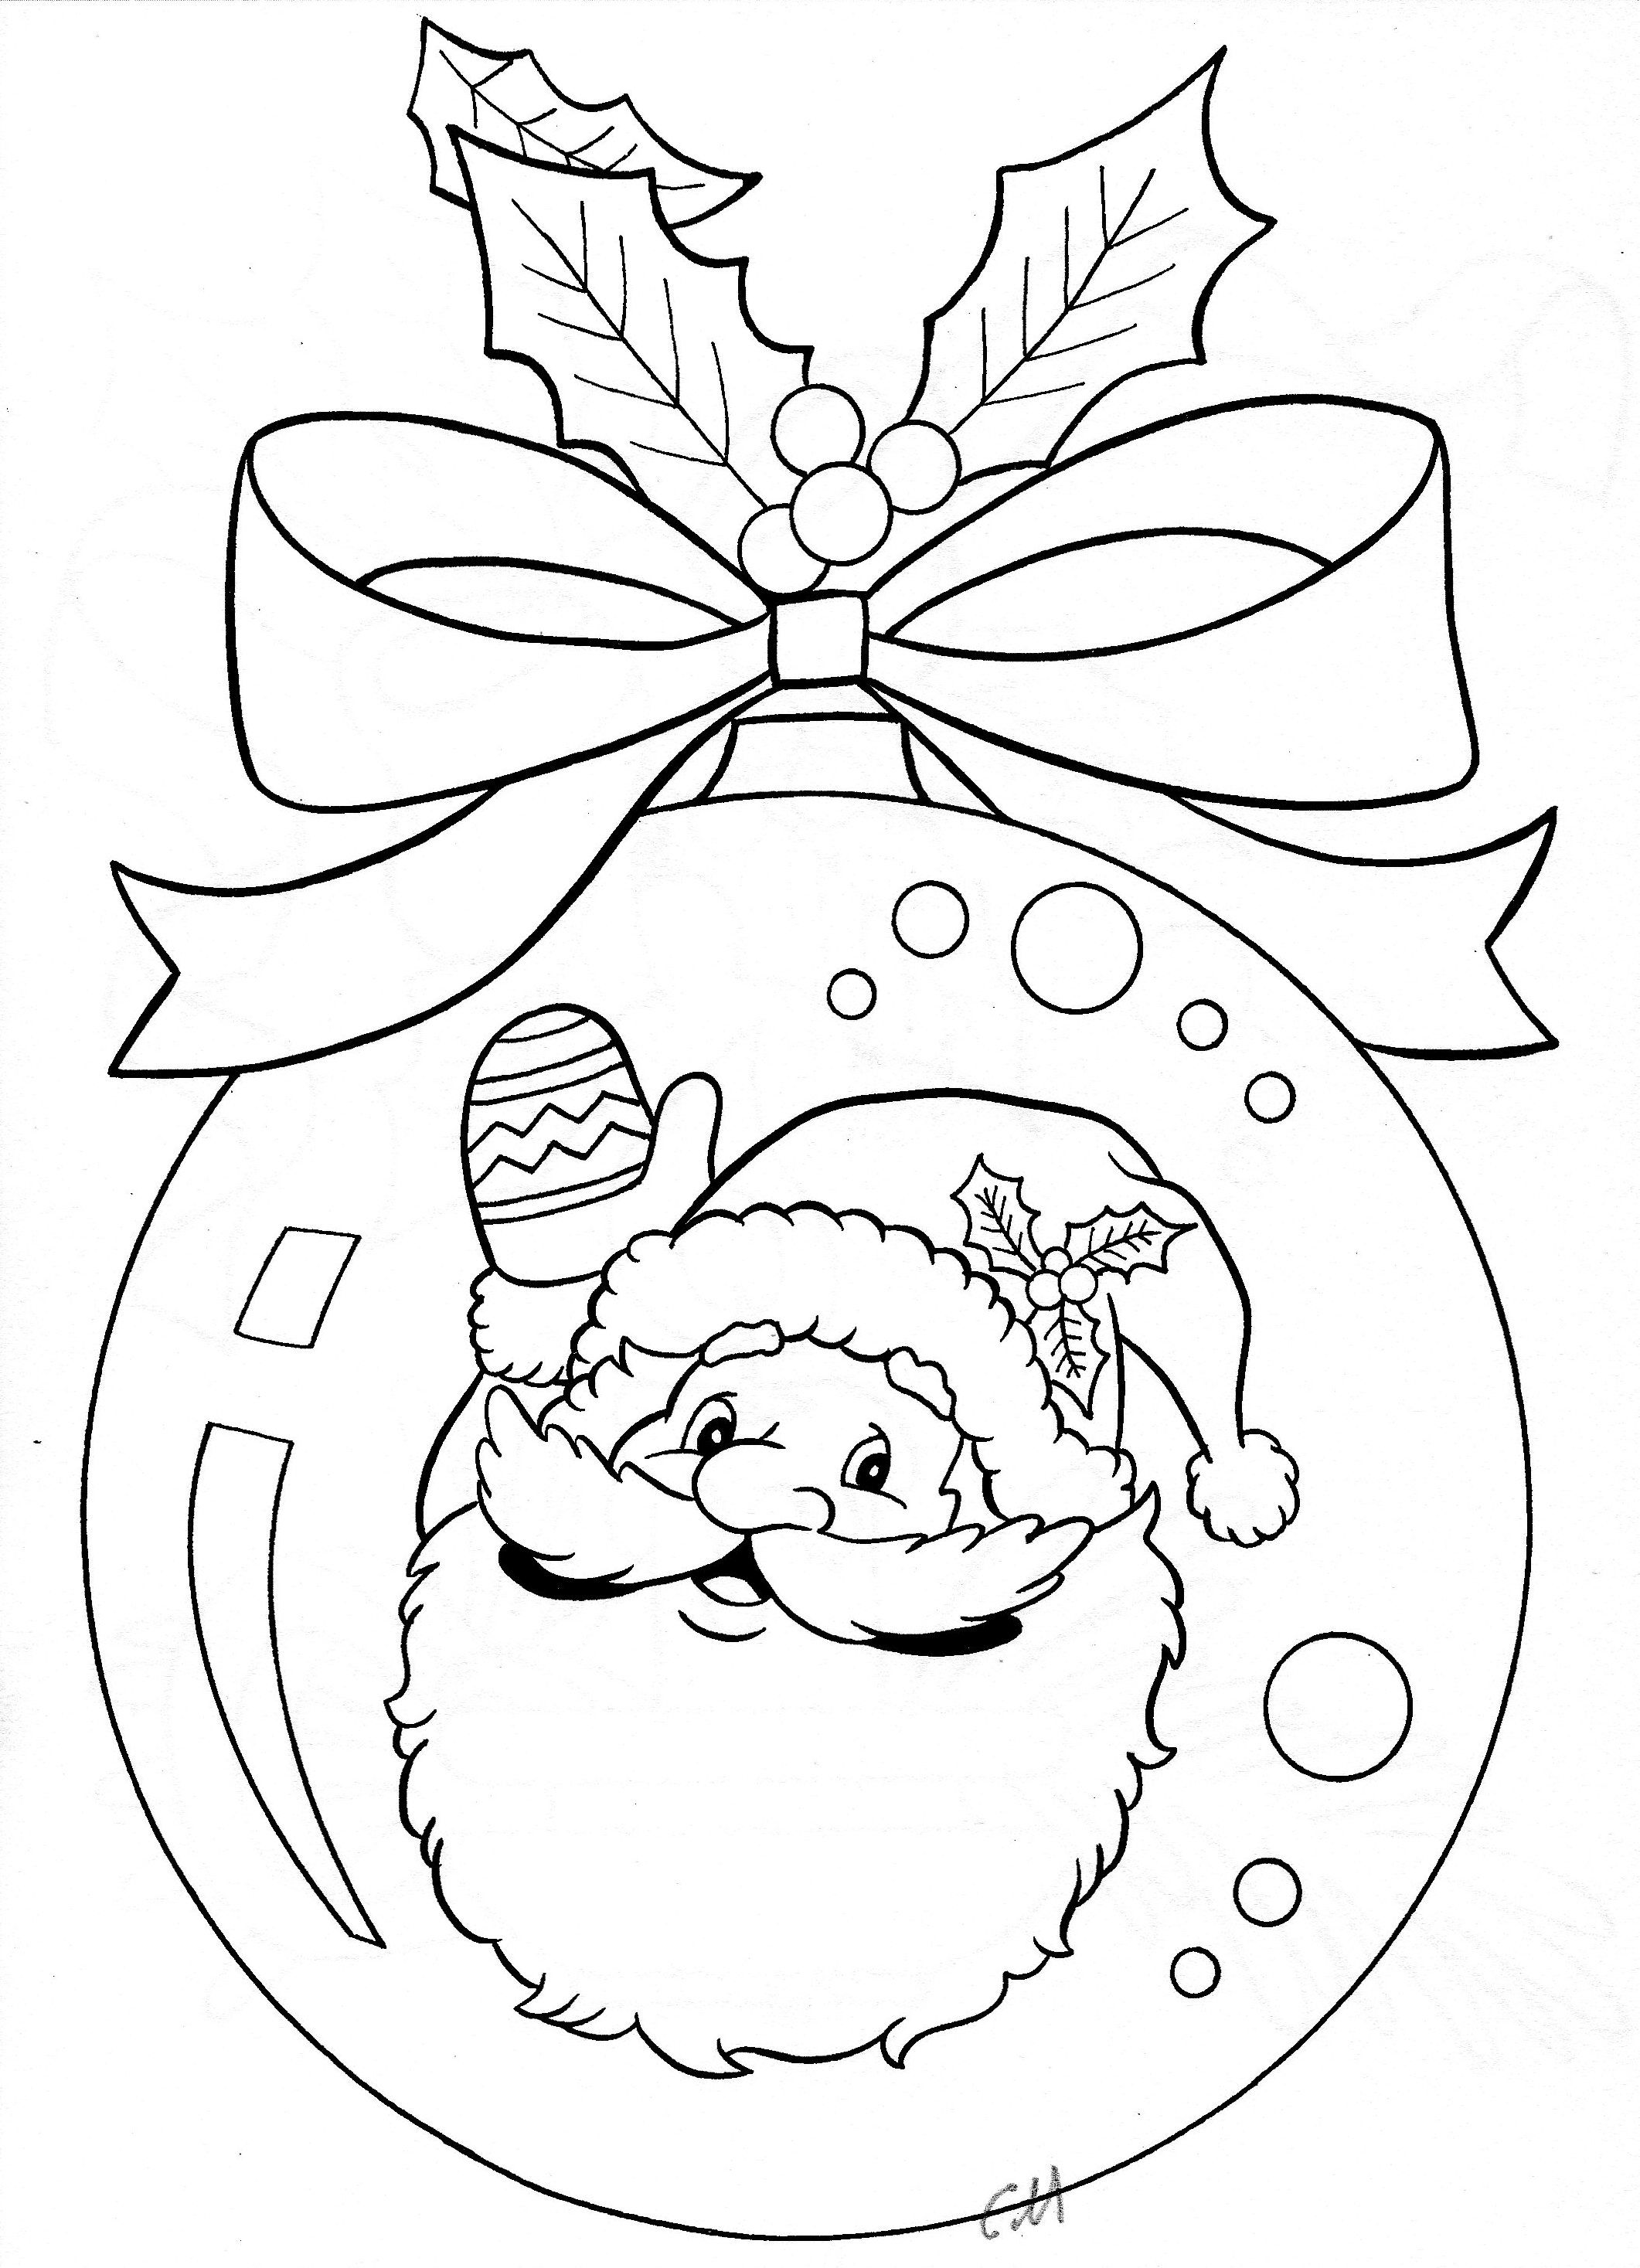 christmas baubles templates to colour adult colouring christmas easter zentangles on pinterest colour baubles templates christmas to